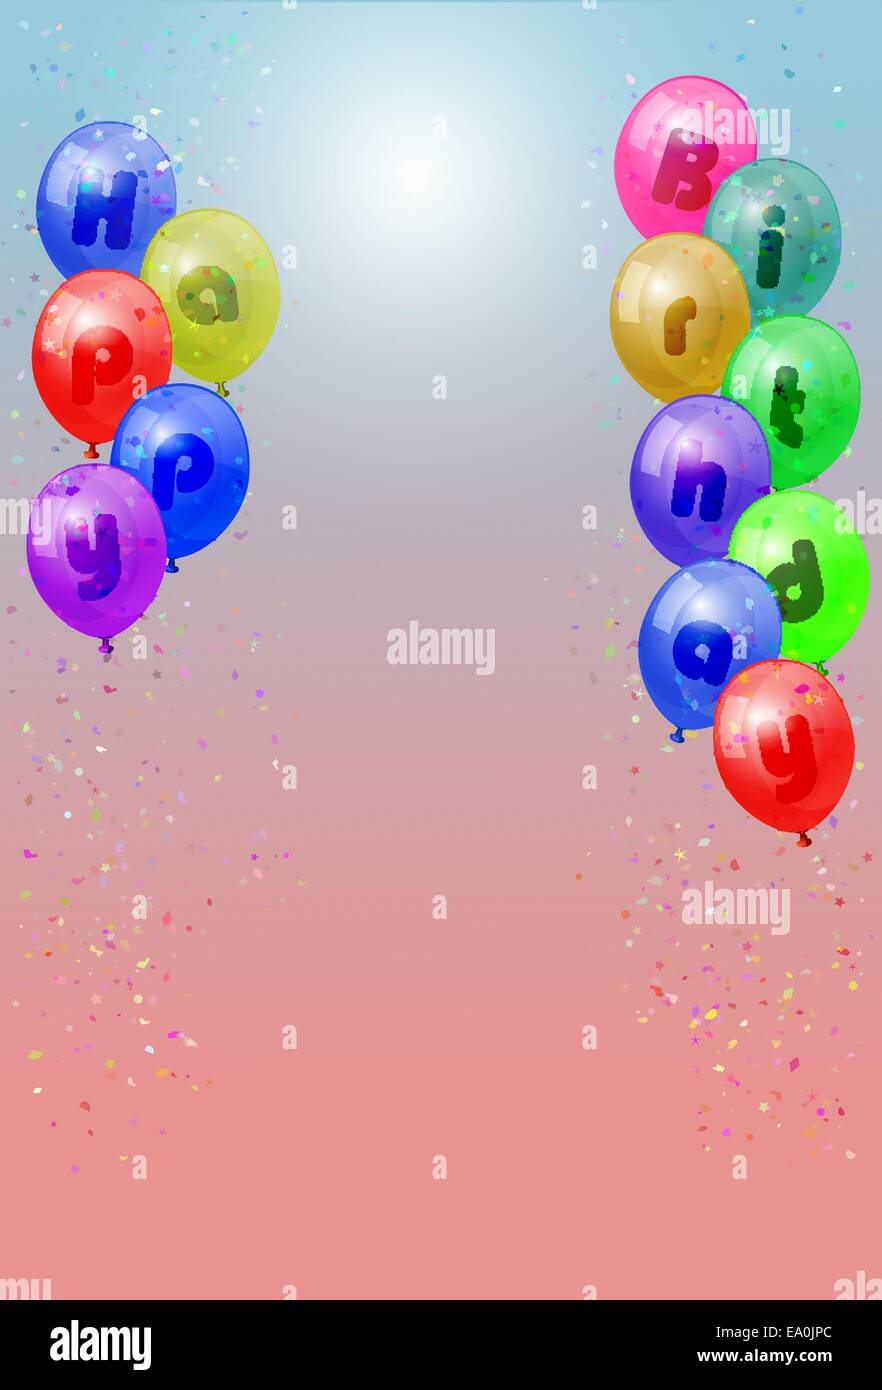 Colourful Balloons Stock Vector Images - Alamy